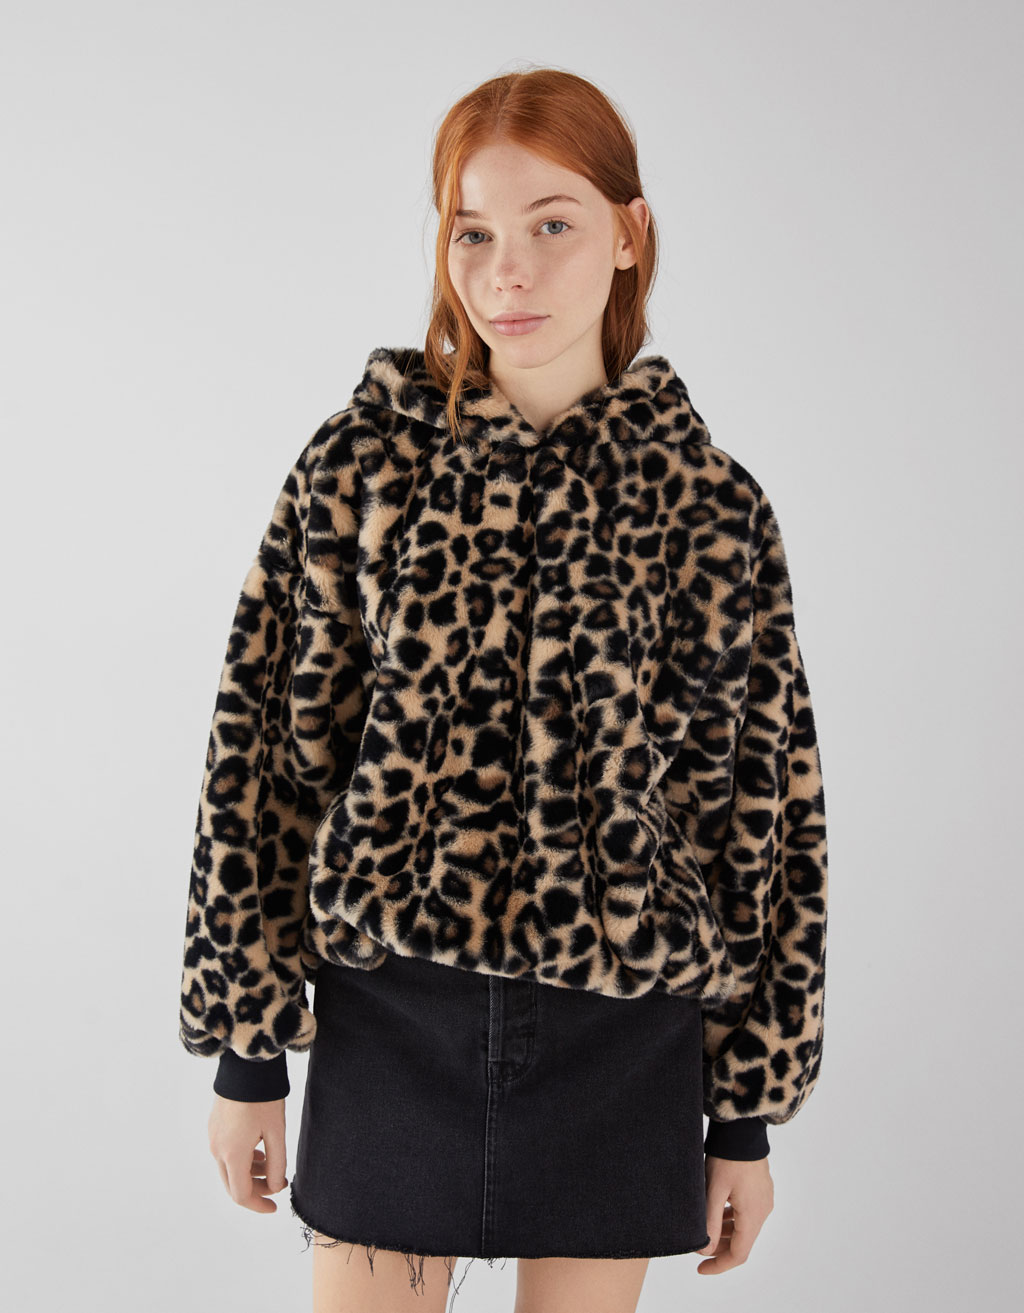 Sweat en fausse fourrure animal print